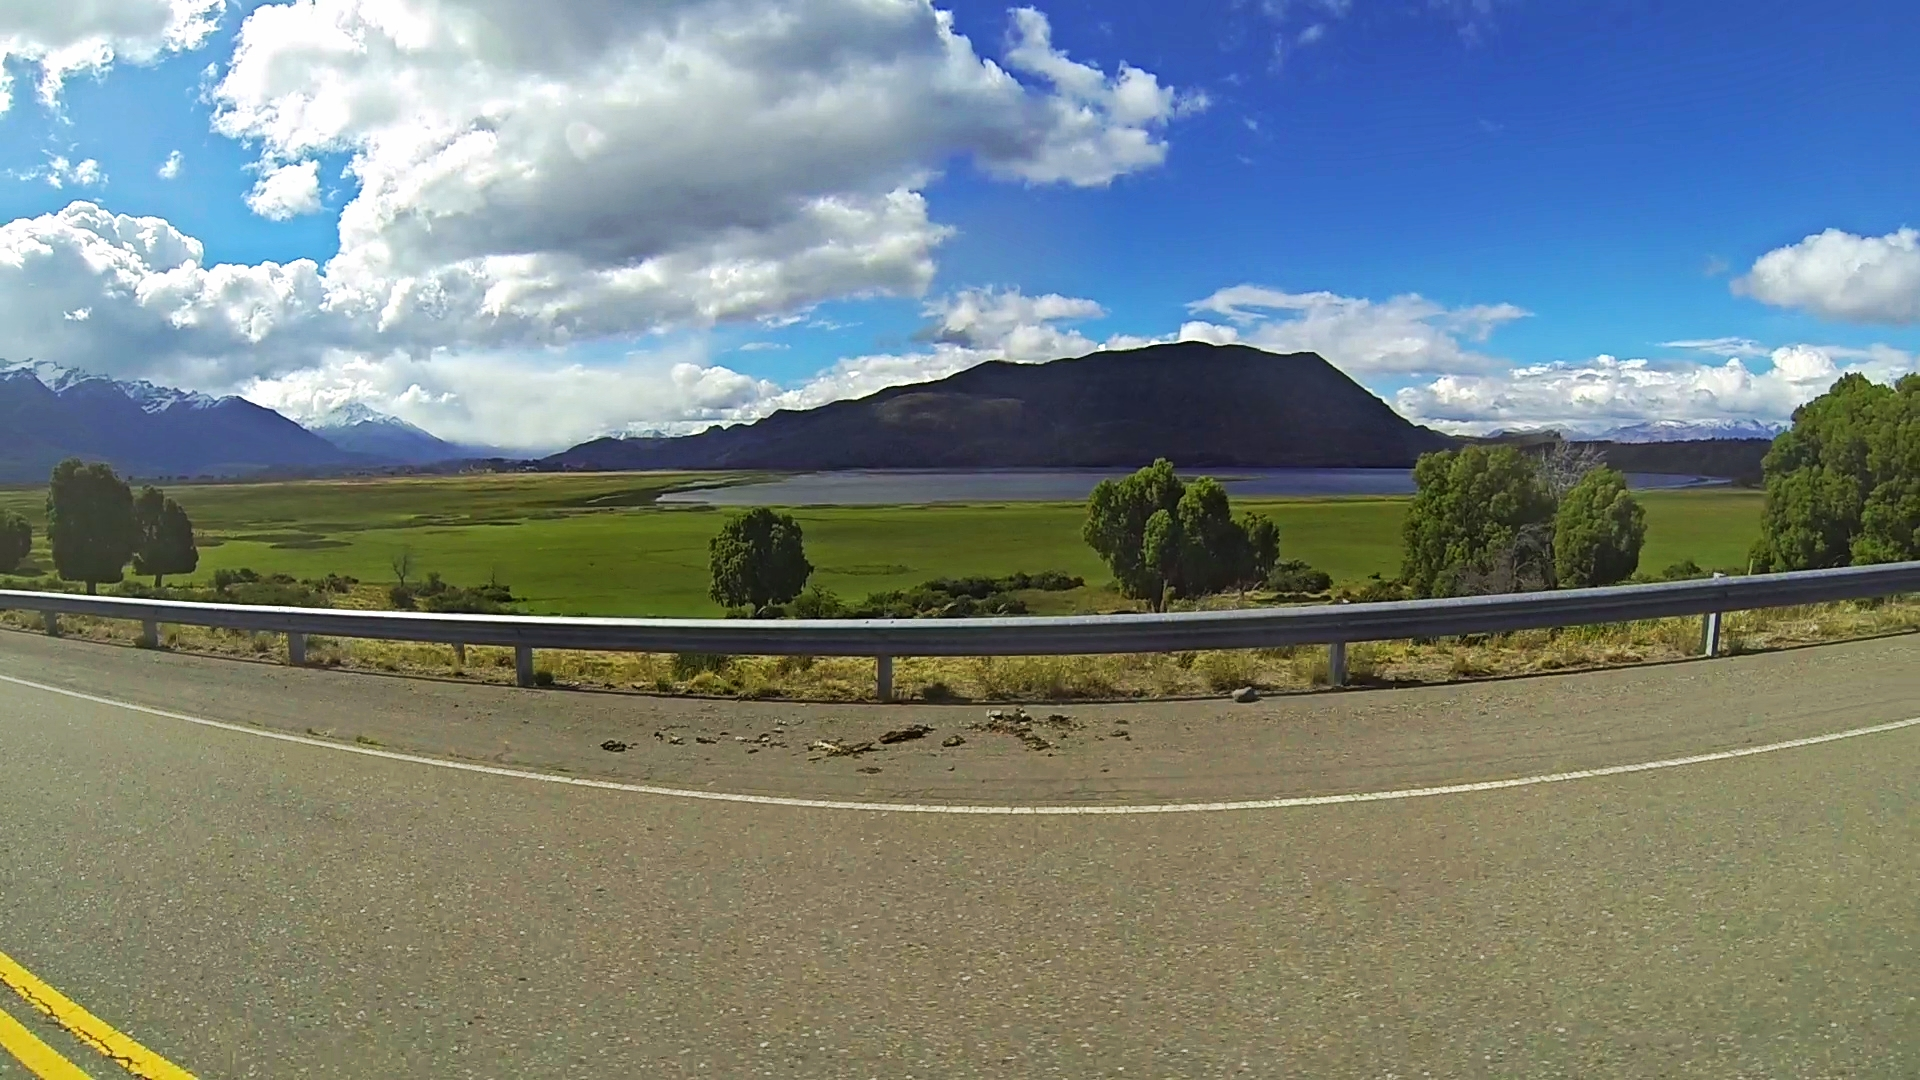 """A """"boring"""" highway view by Patagonian standards"""